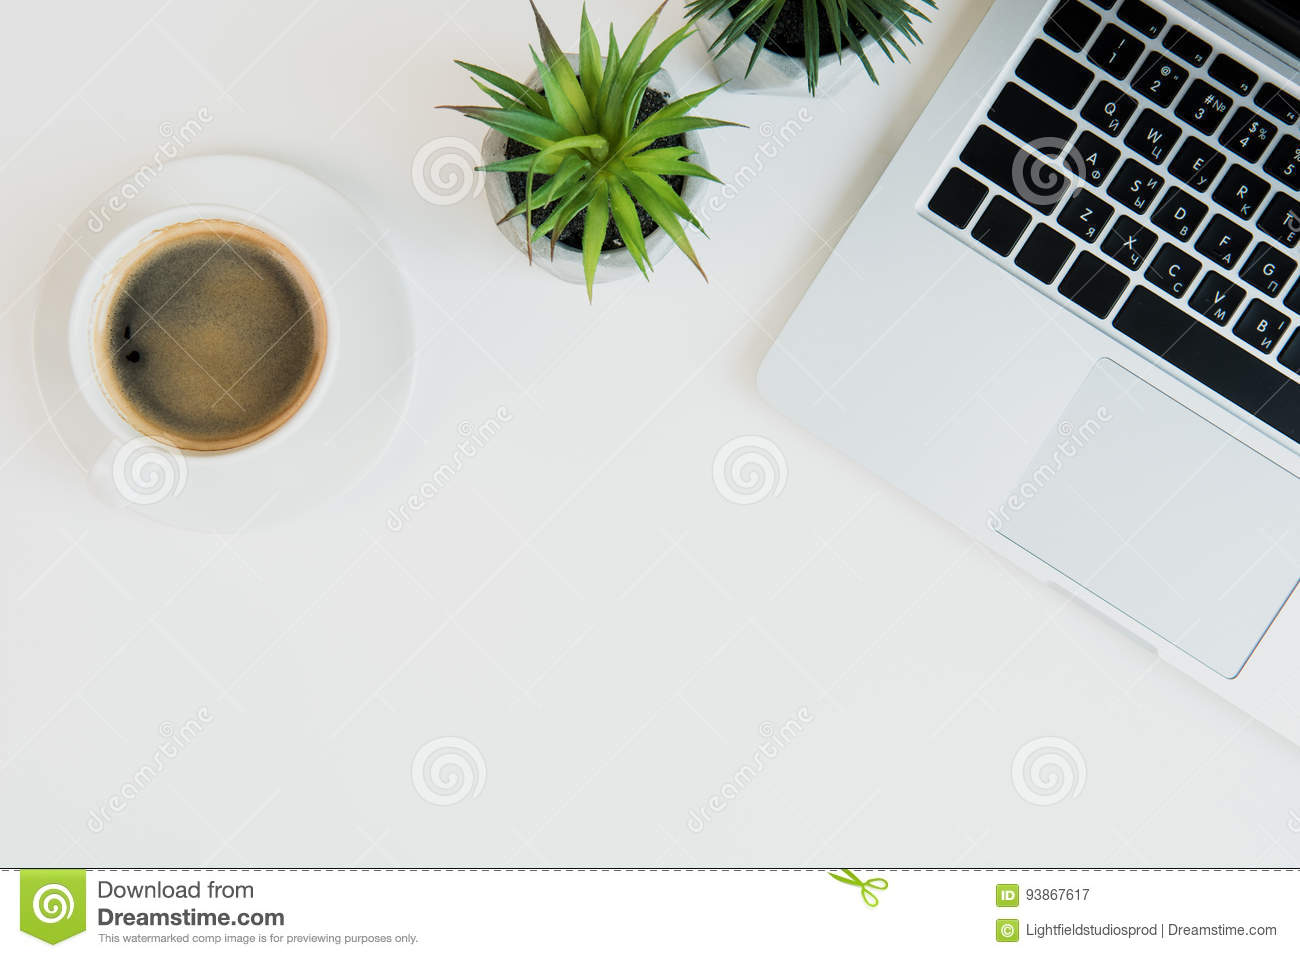 Laptop With Cup Of Coffee And Plants On Table Top Laptop